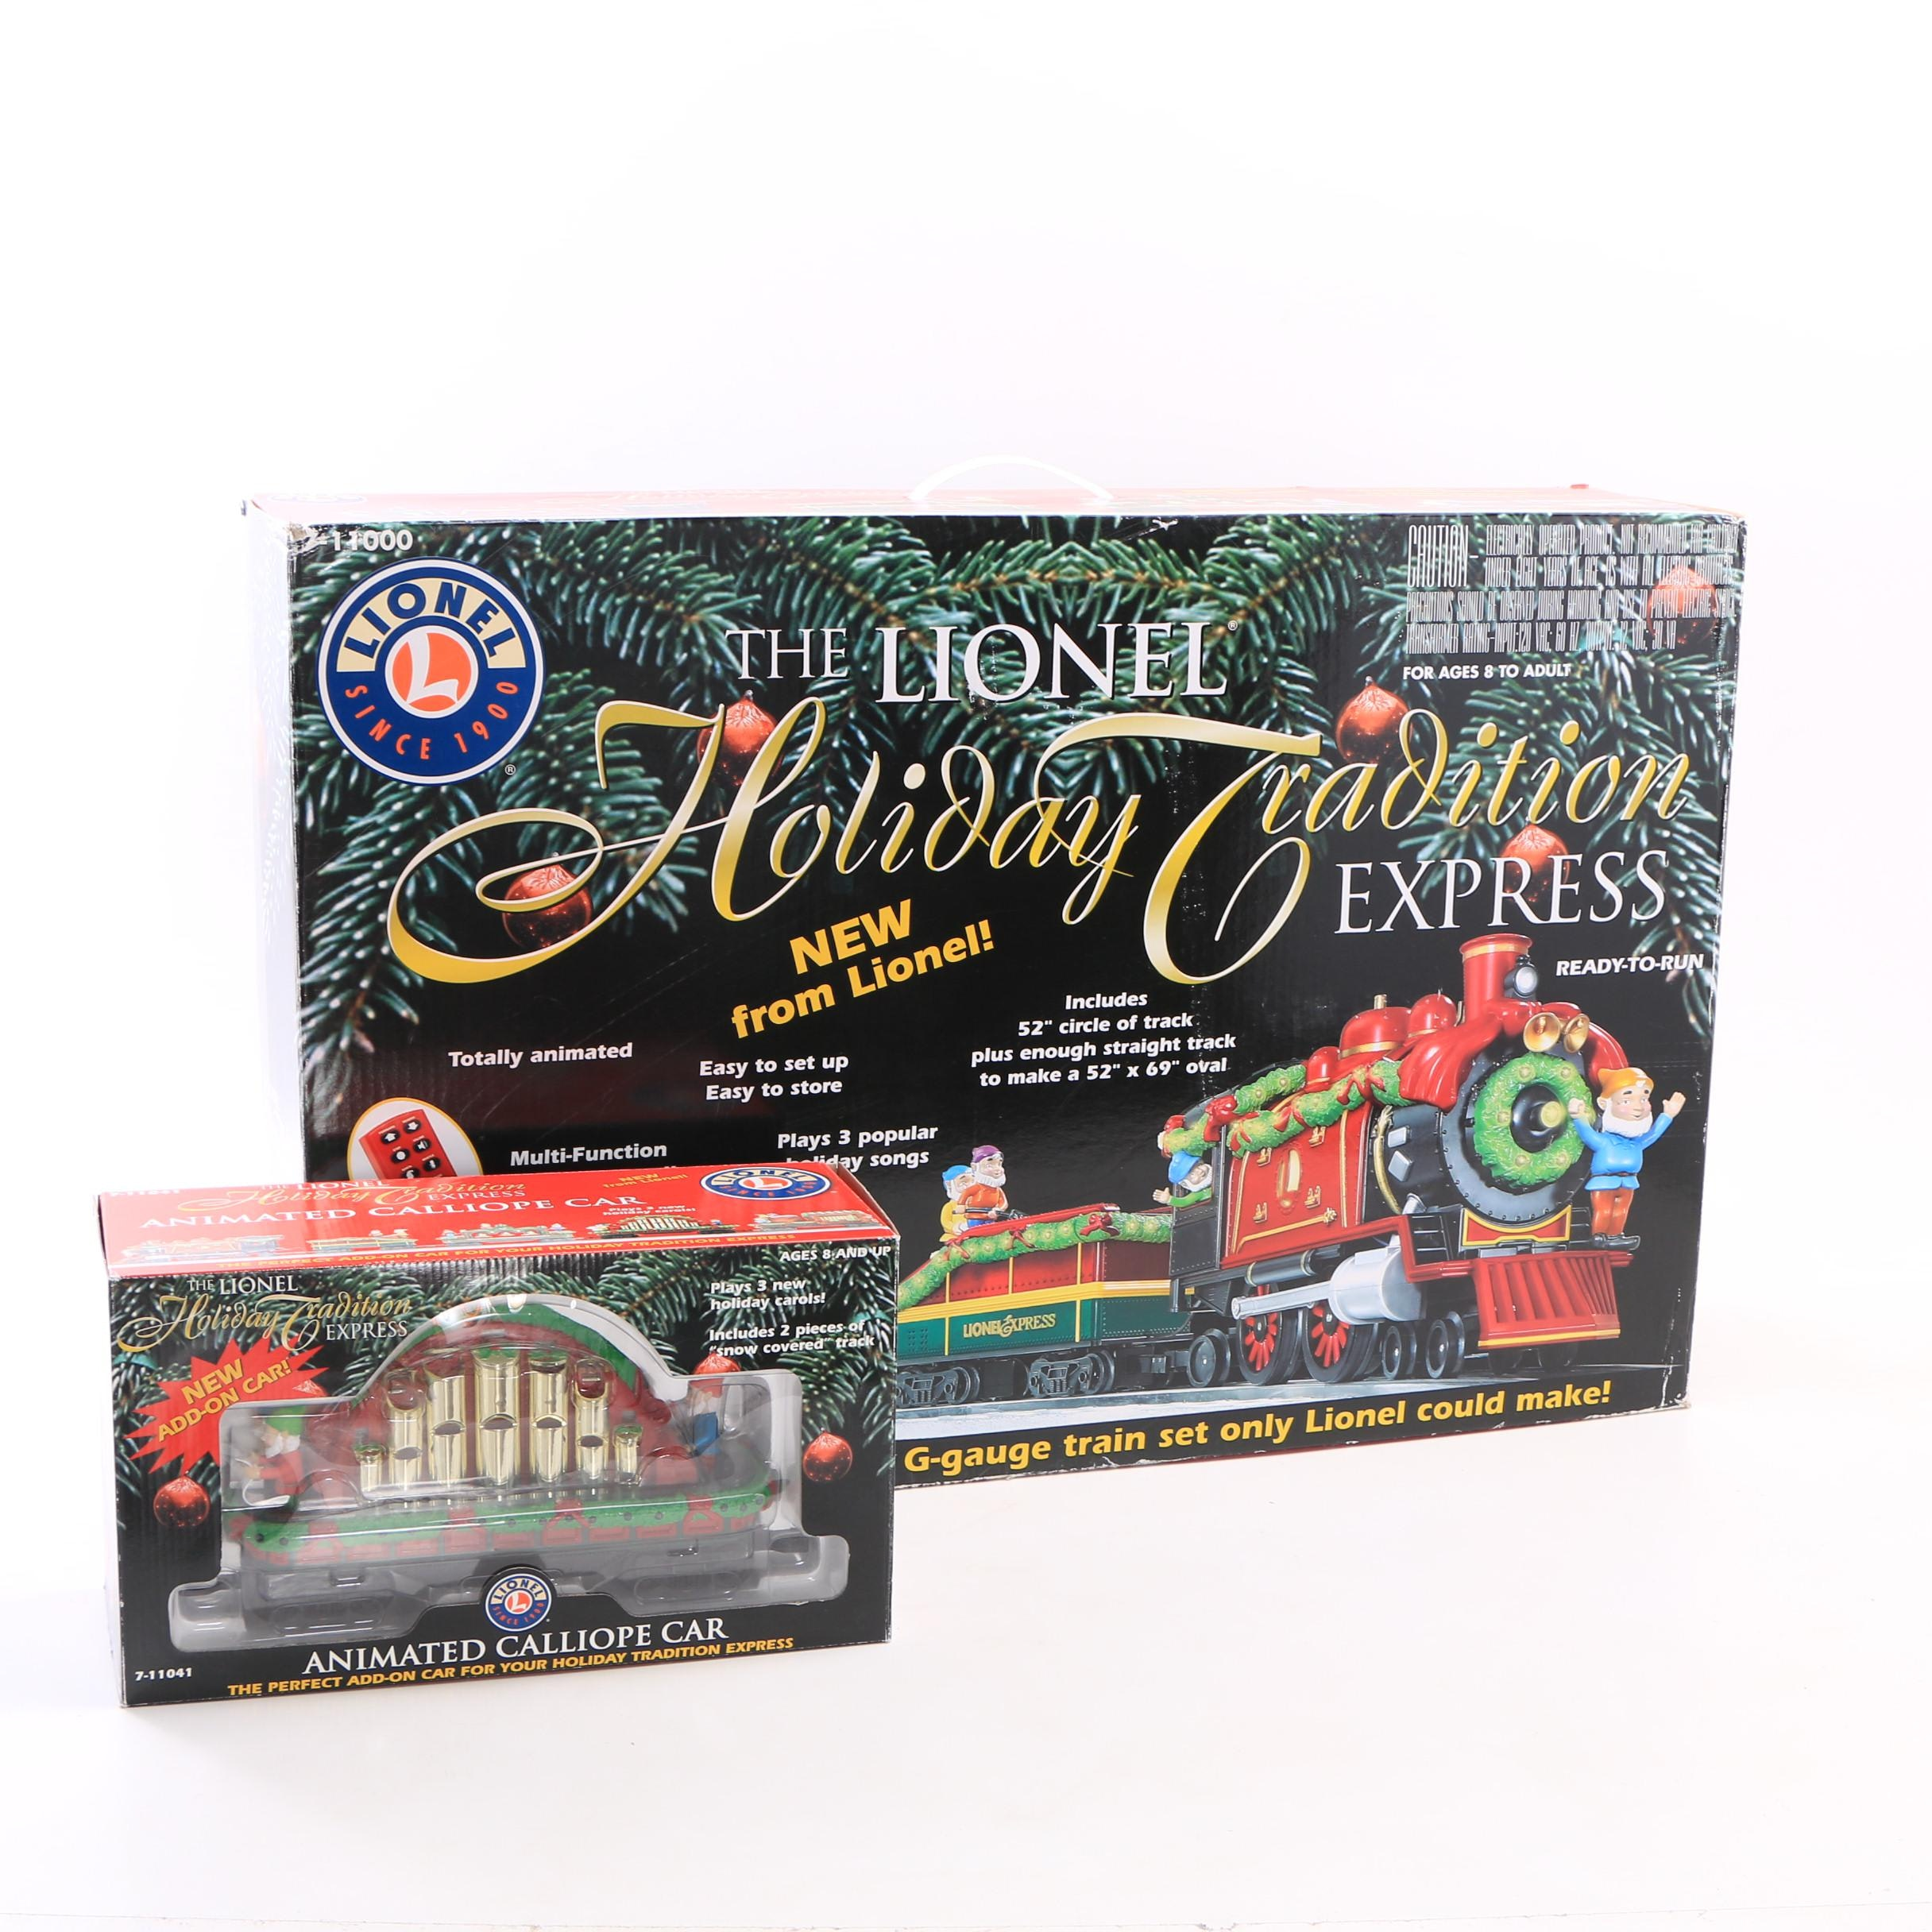 """Lionel """"Holiday Tradition Express"""" G-Gauge Train Set with Calliope Car"""